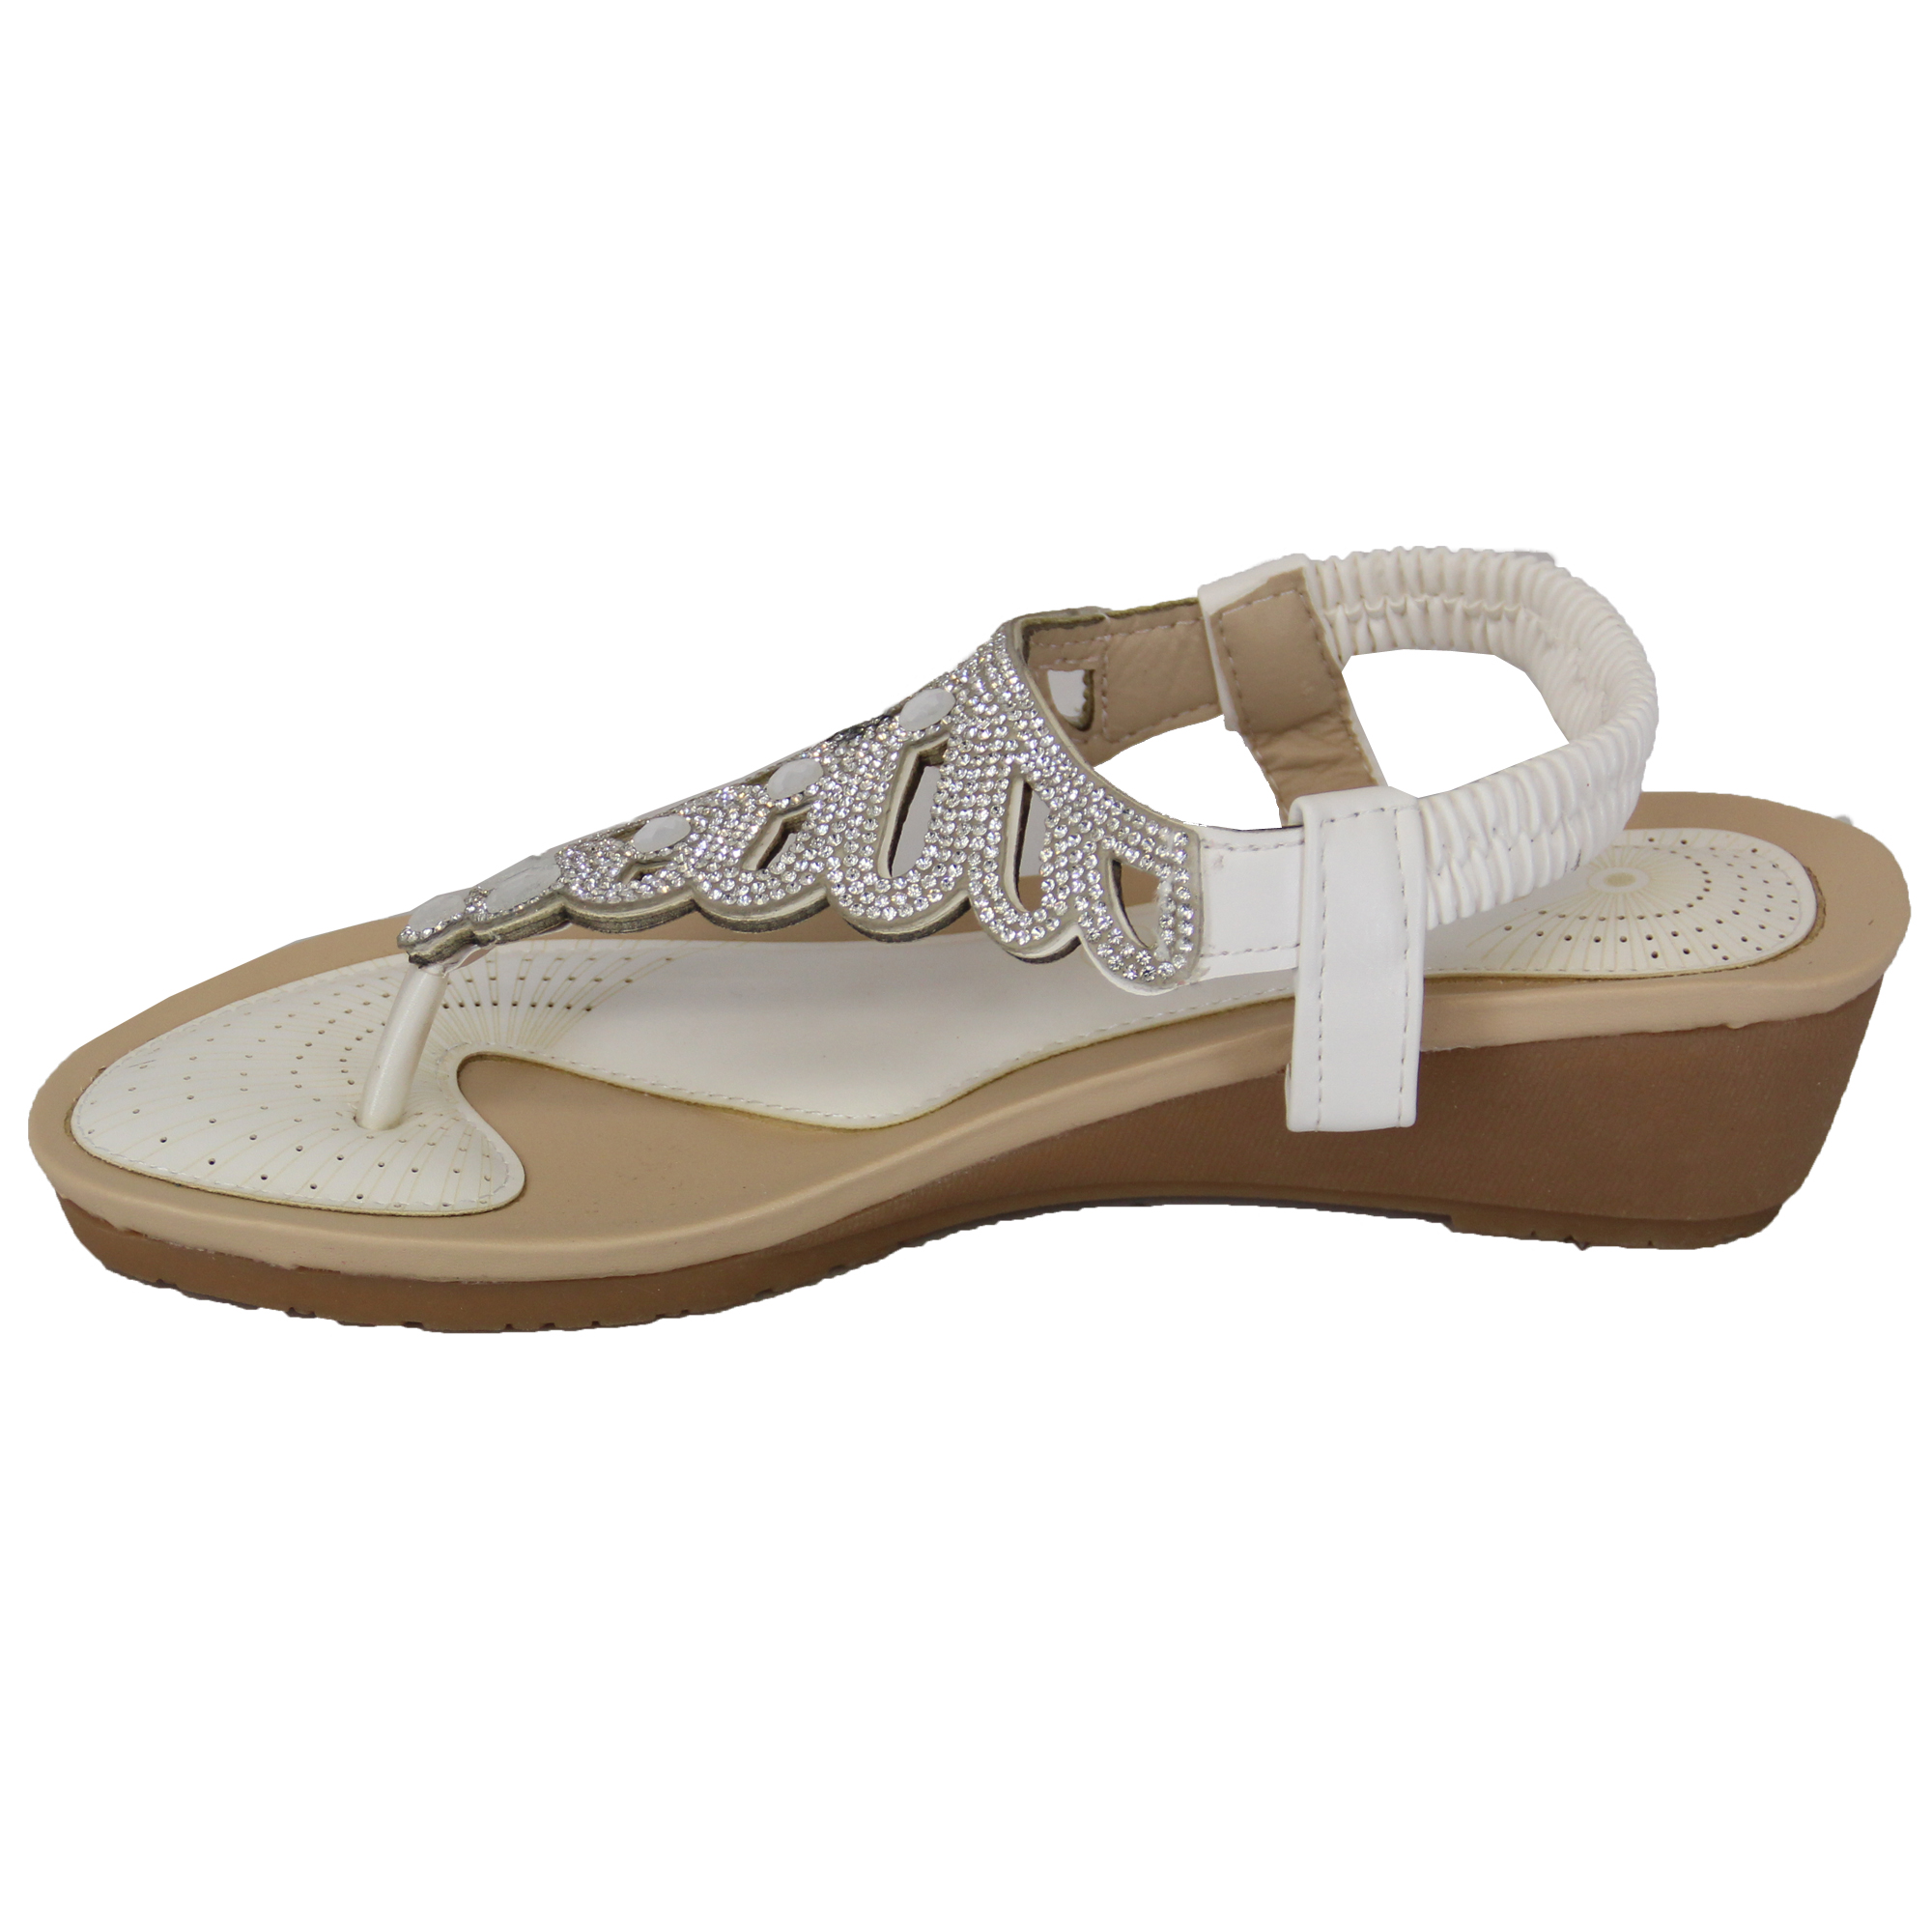 Ladies-Sandals-Kelsi-Womens-Diamante-Slip-On-Toe-Post-Shoes-Casual-Fashion-New thumbnail 32